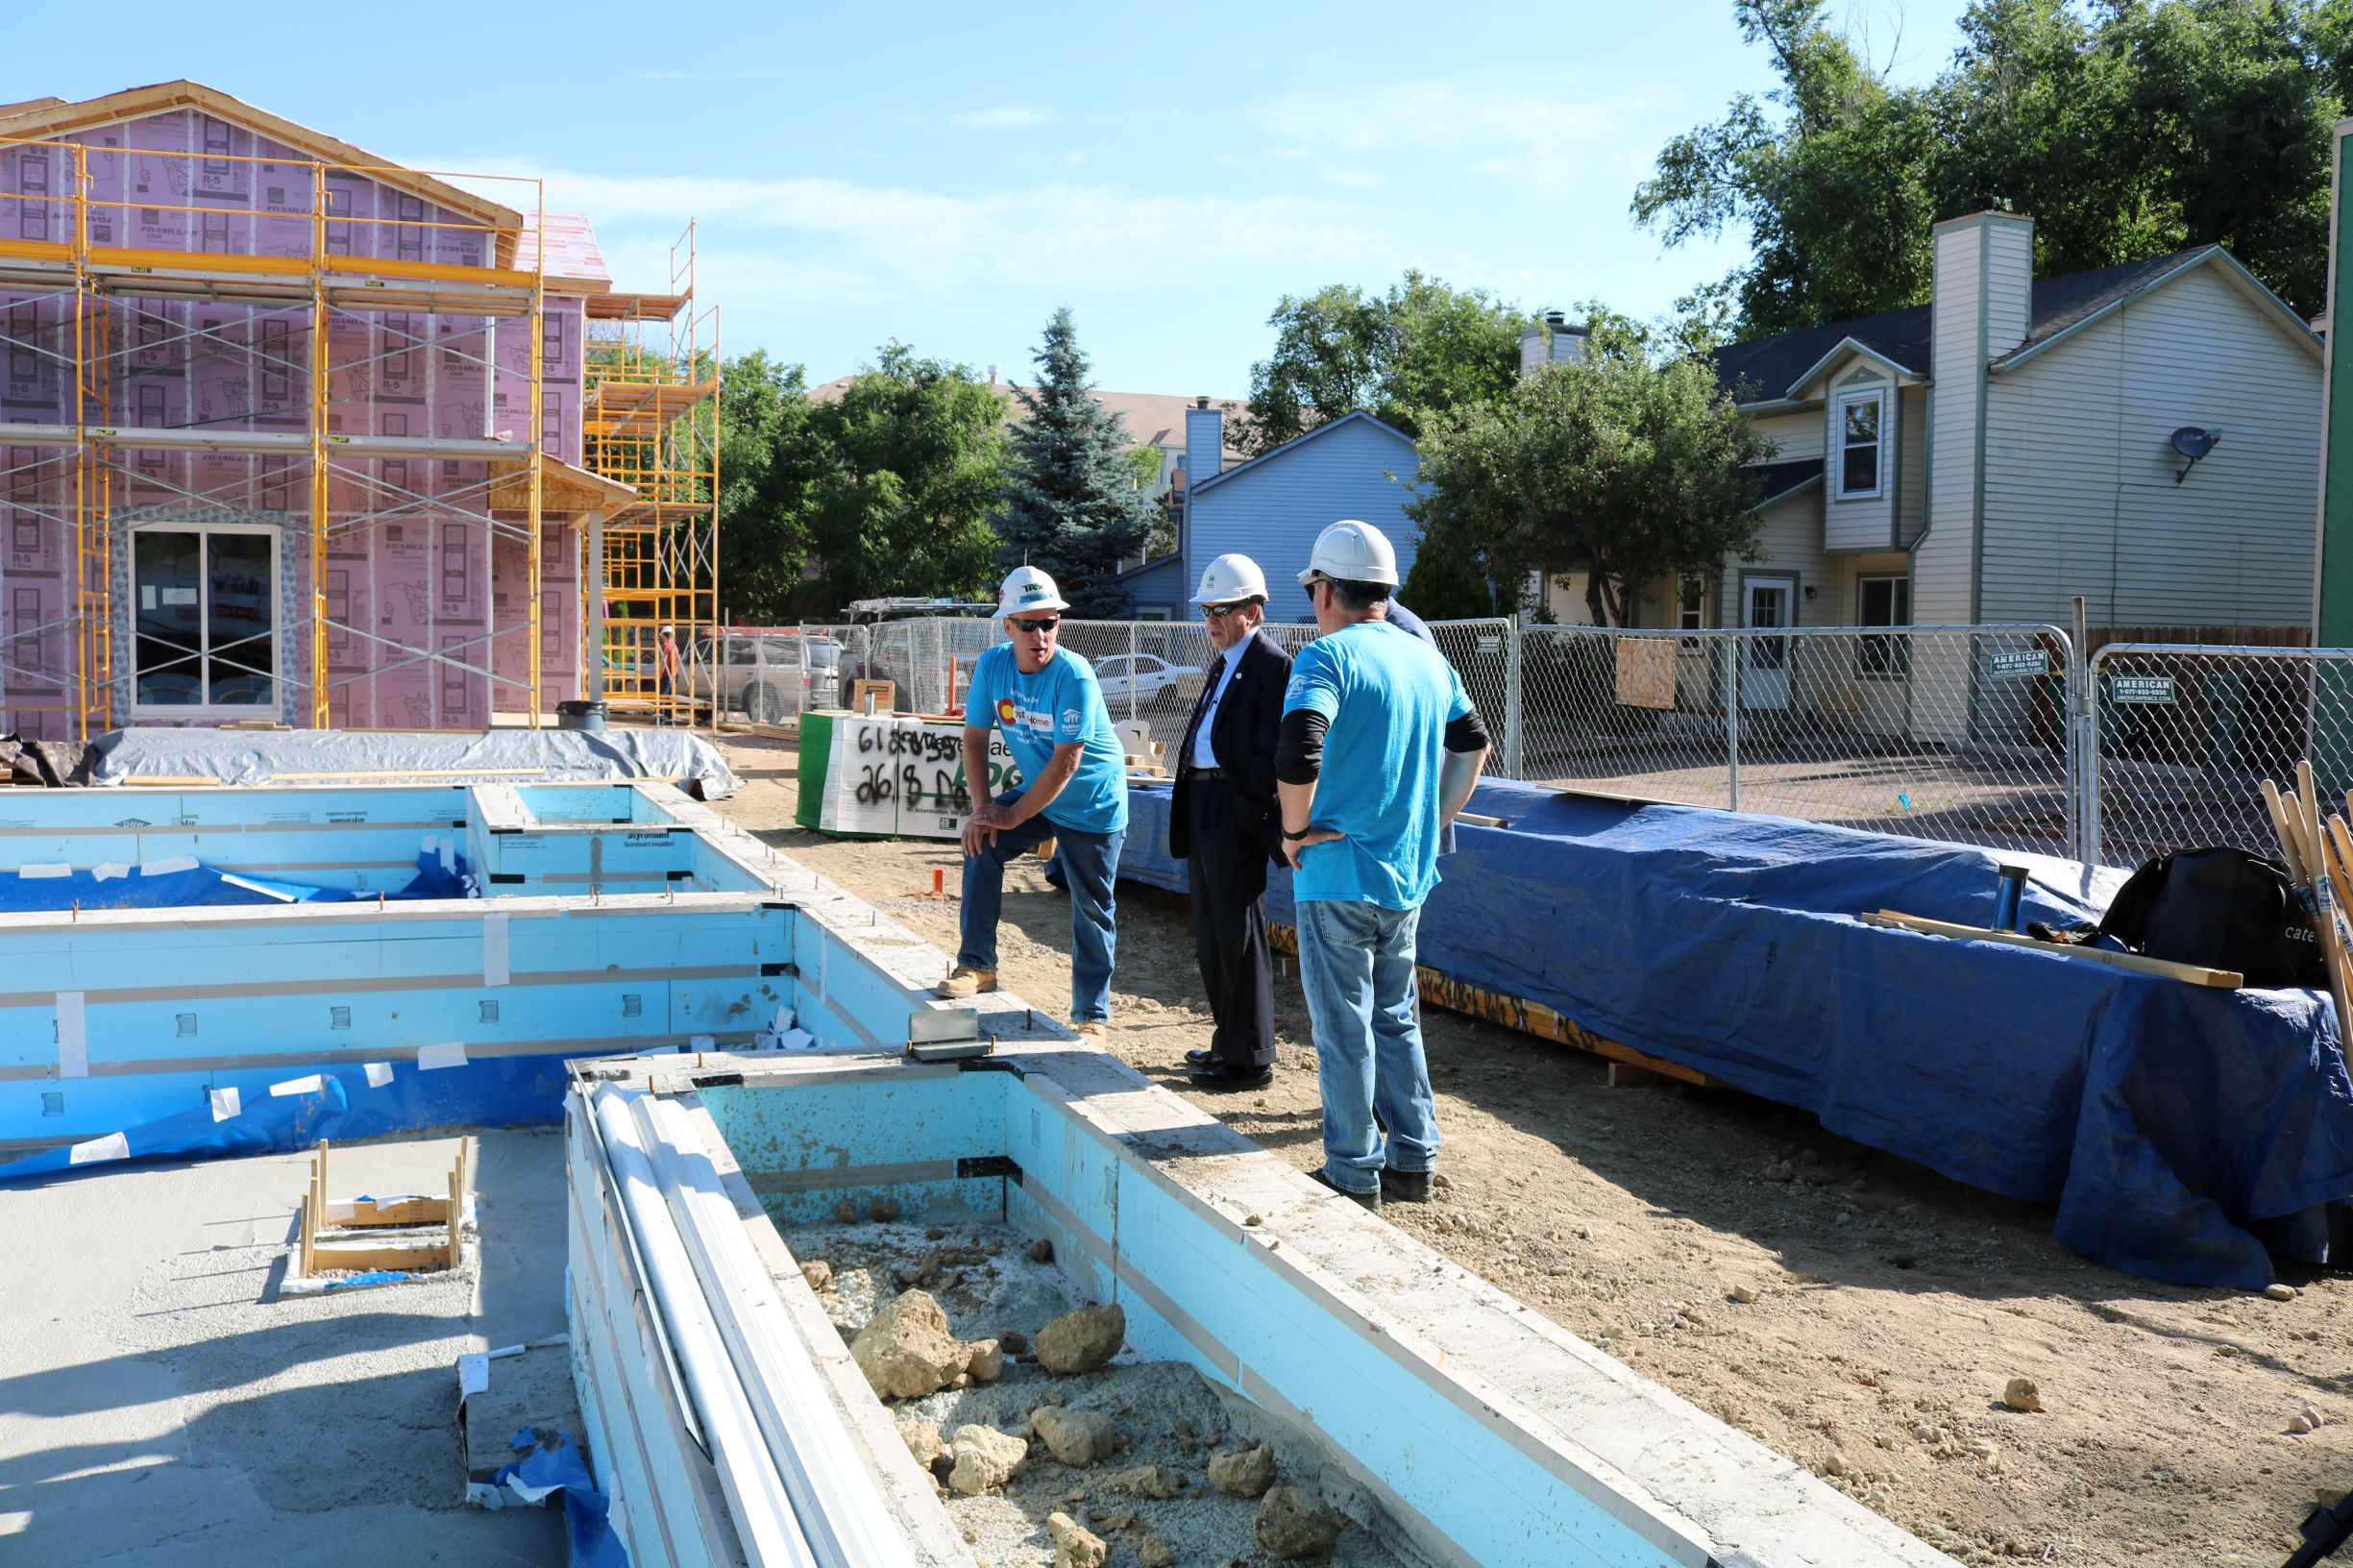 Trevor Bennett Conducts a Tour of the Construction Site.